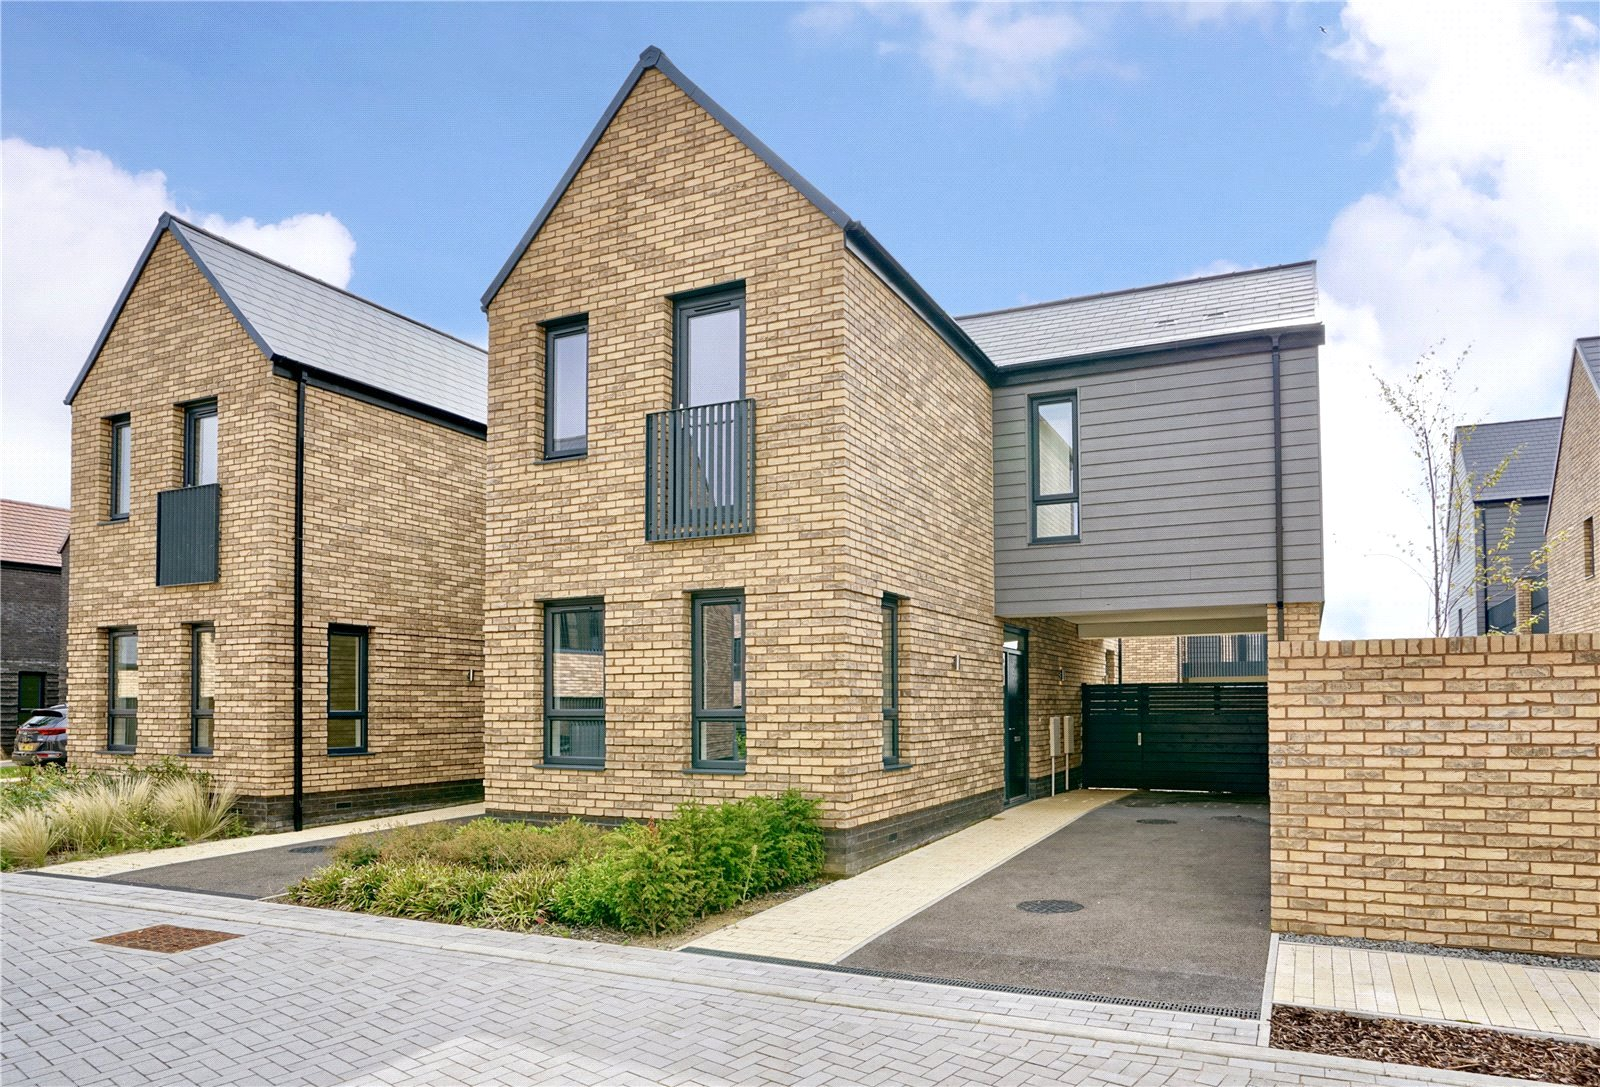 3 bed house for sale in Alconbury Weald, PE28 4LD 0